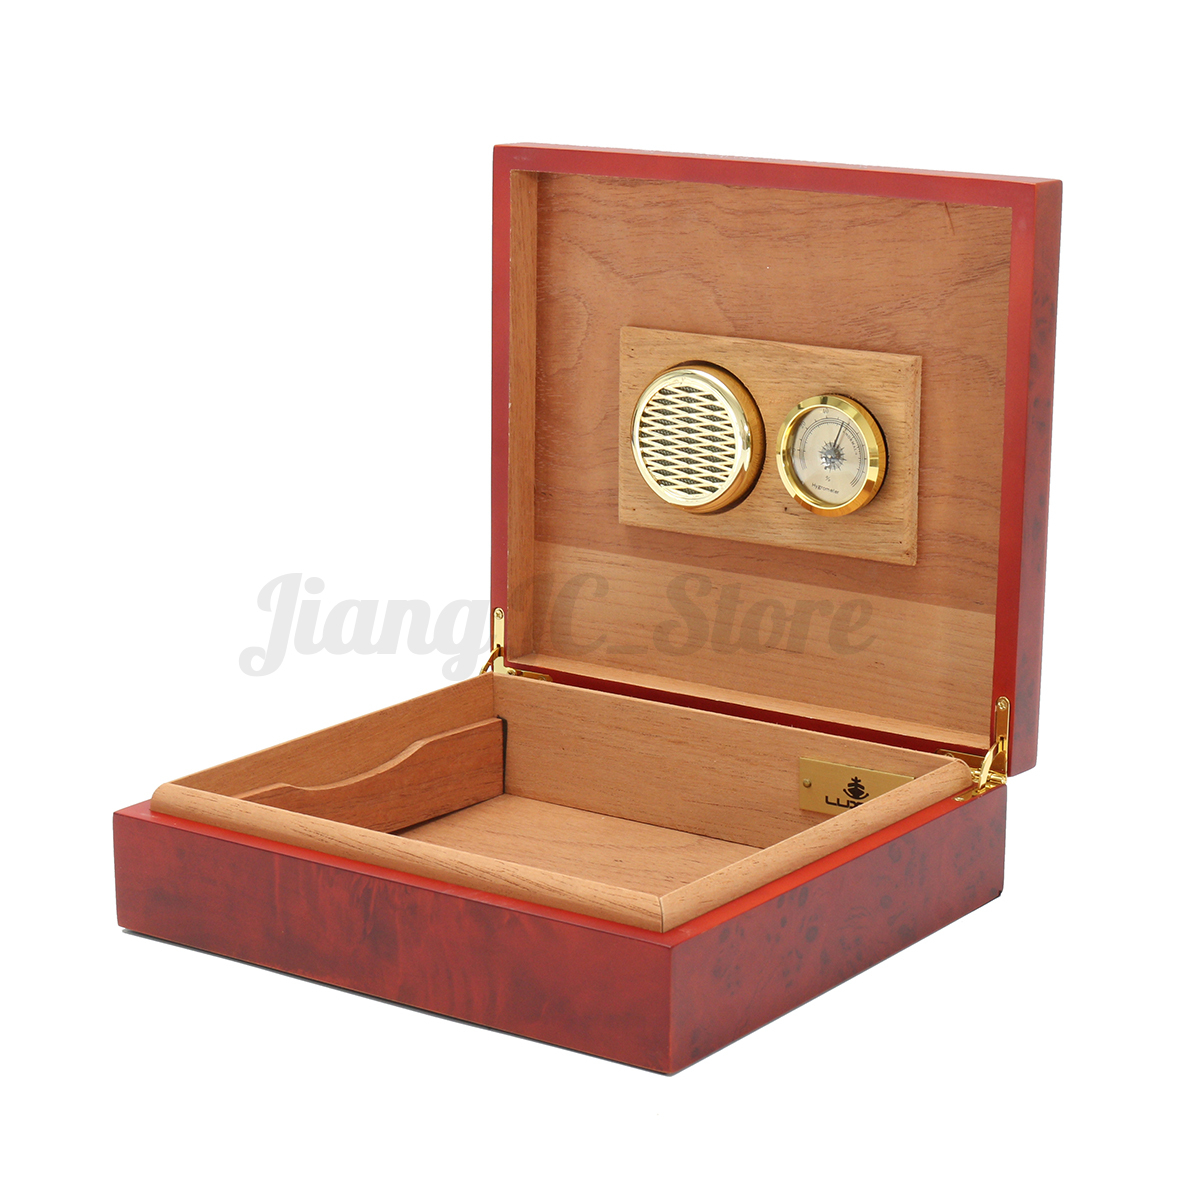 Wood Lined Cigar Humidor Humidifier With Hygrometer Case Box eBay #462414